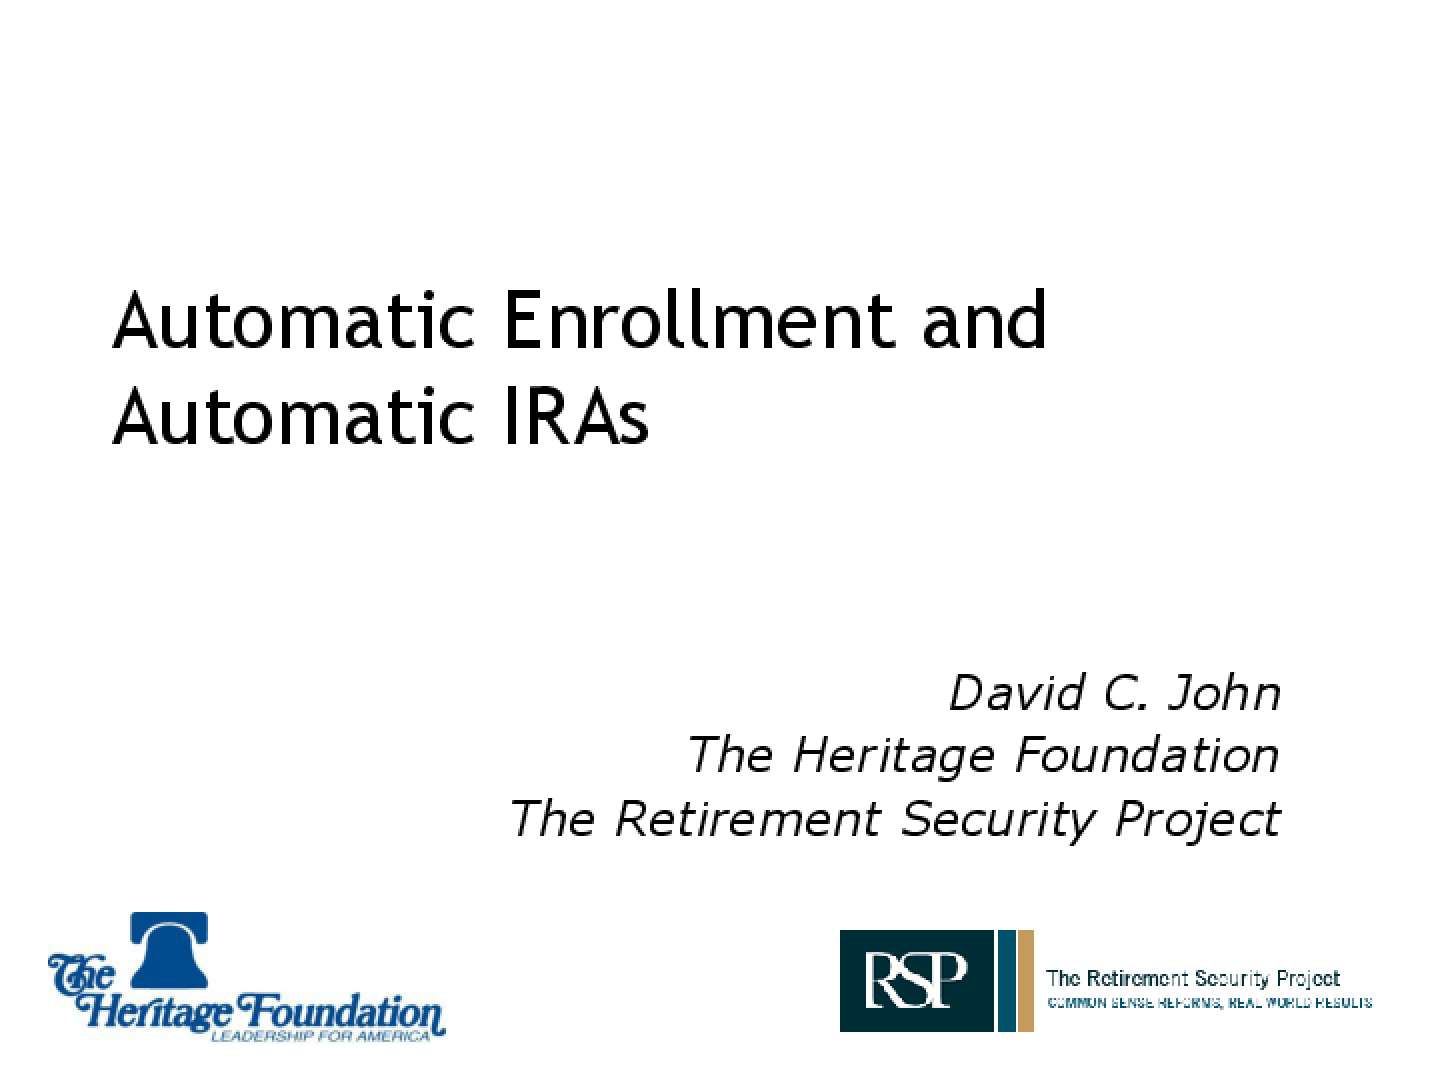 Automatic Enrollment and Automatic IRAs